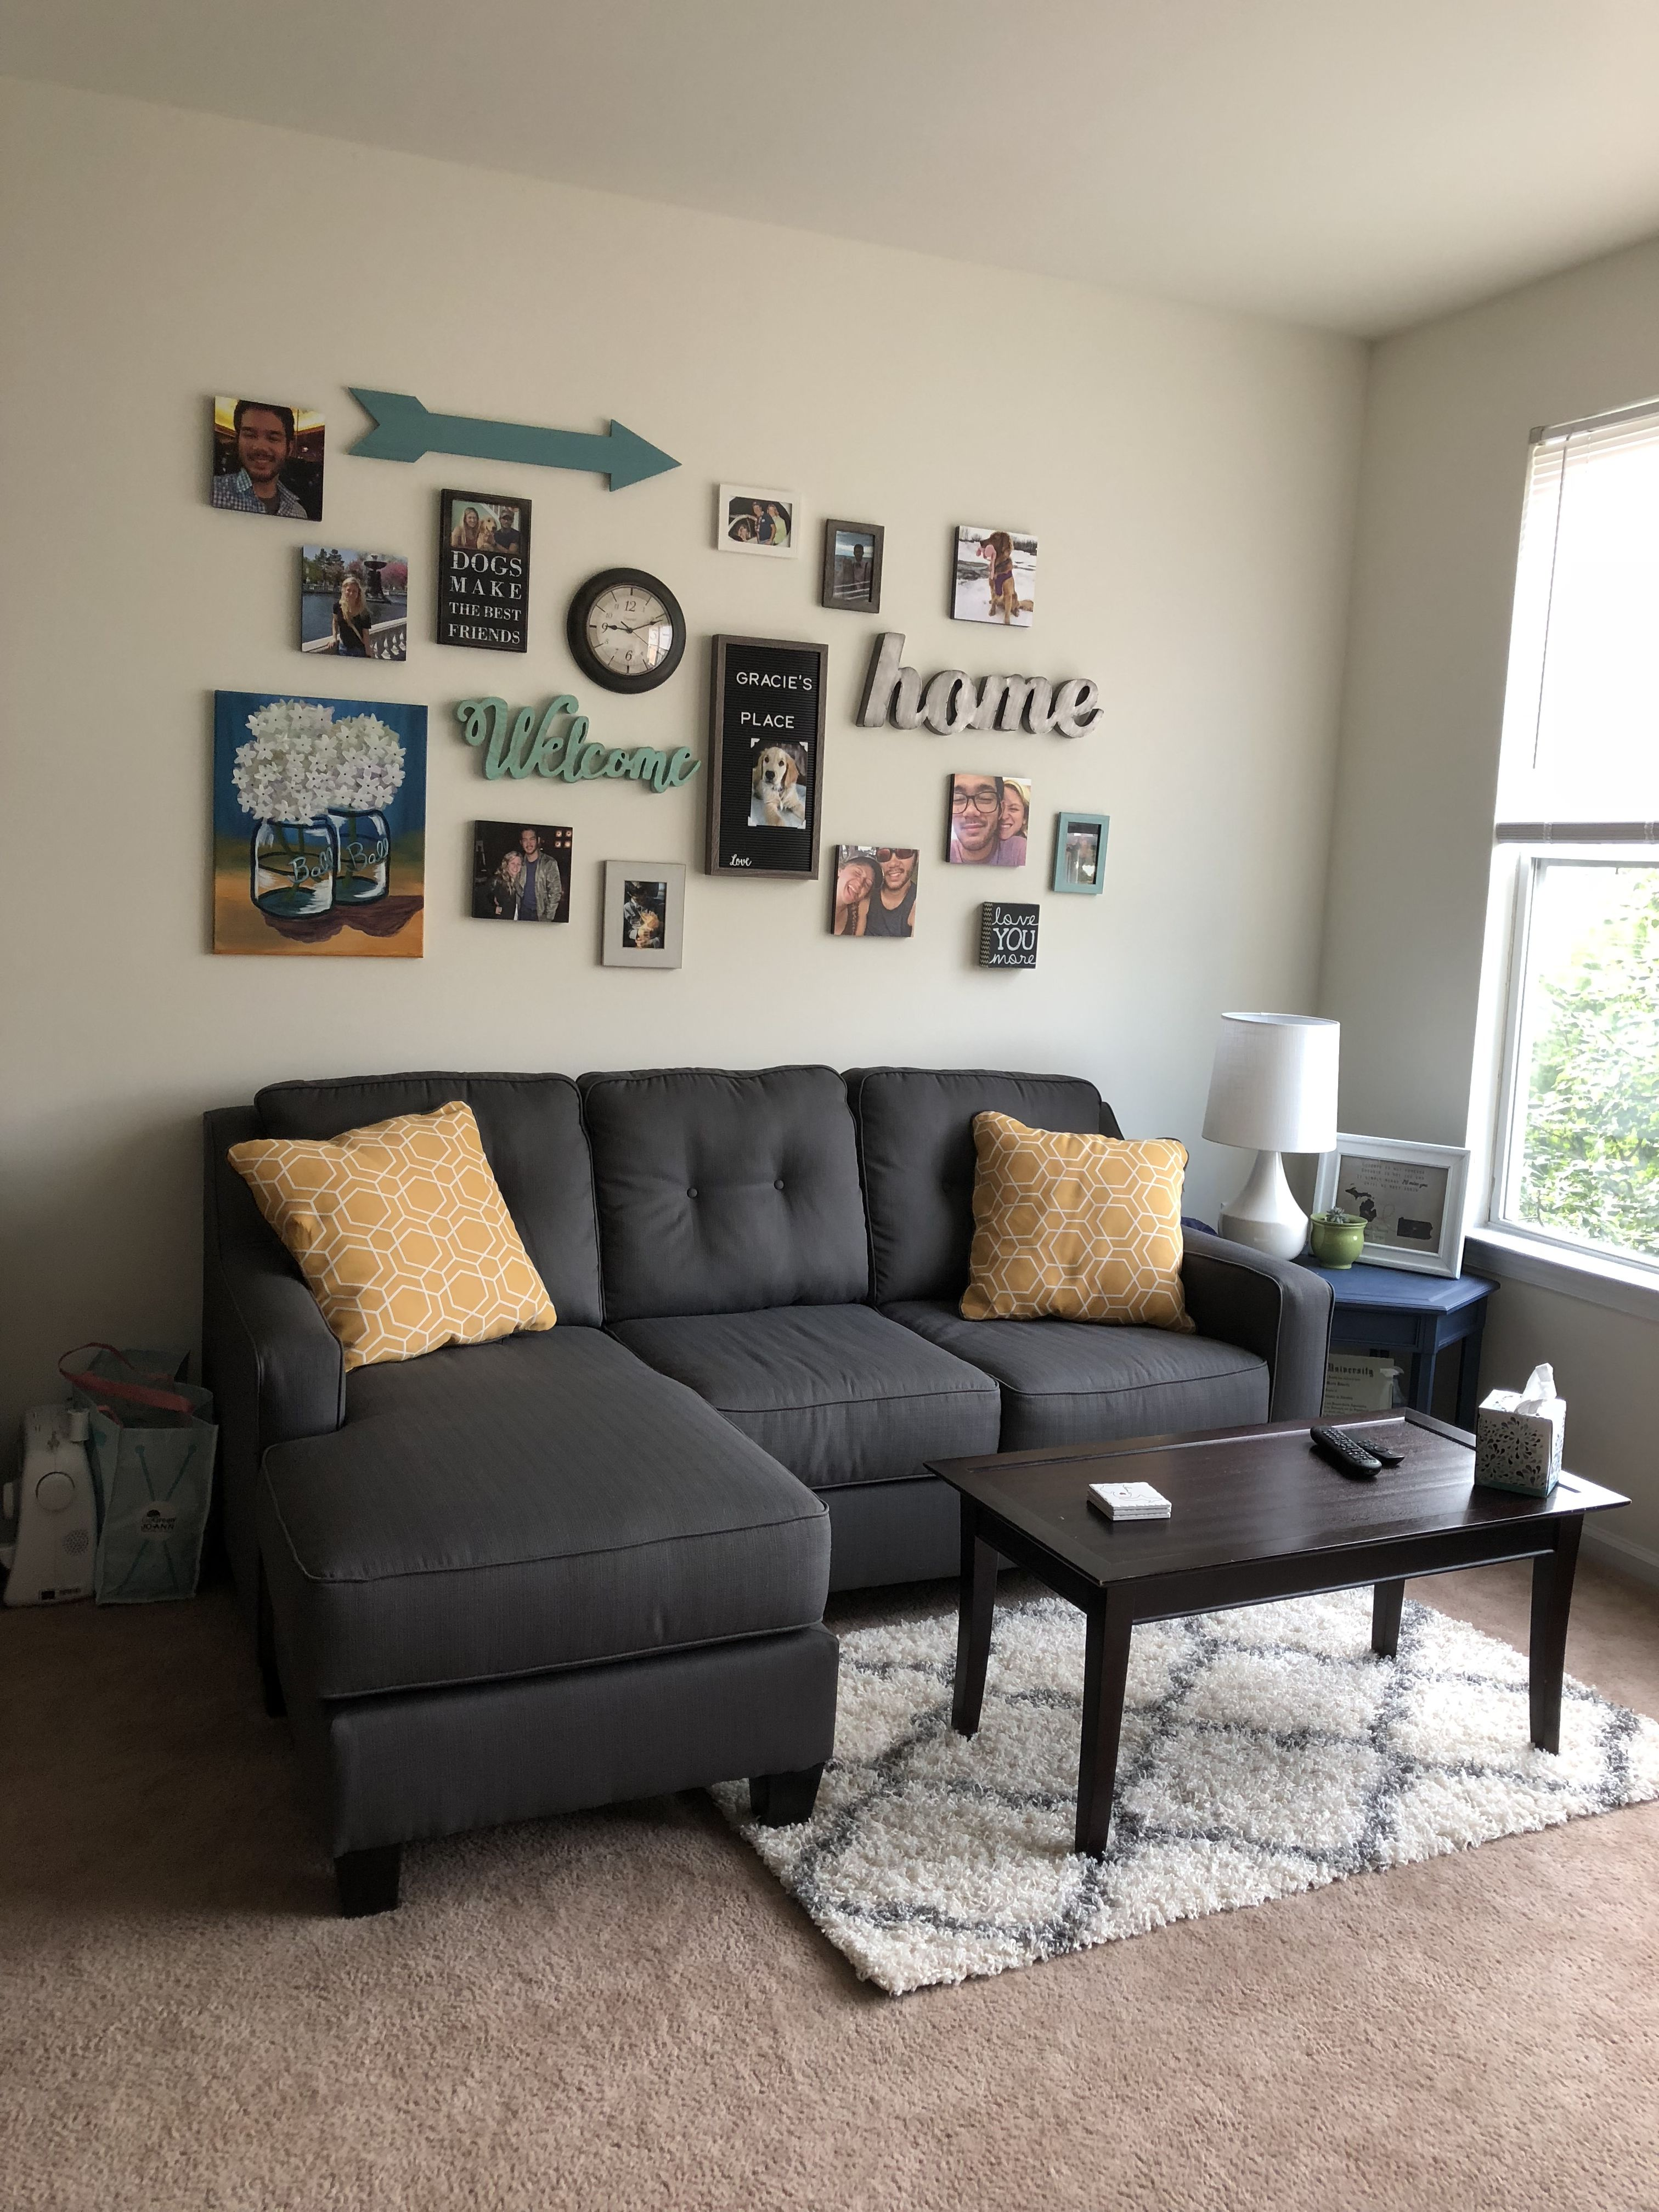 wall collage ideas living room wall collage picture on family picture wall ideas for living room furniture arrangements id=71159